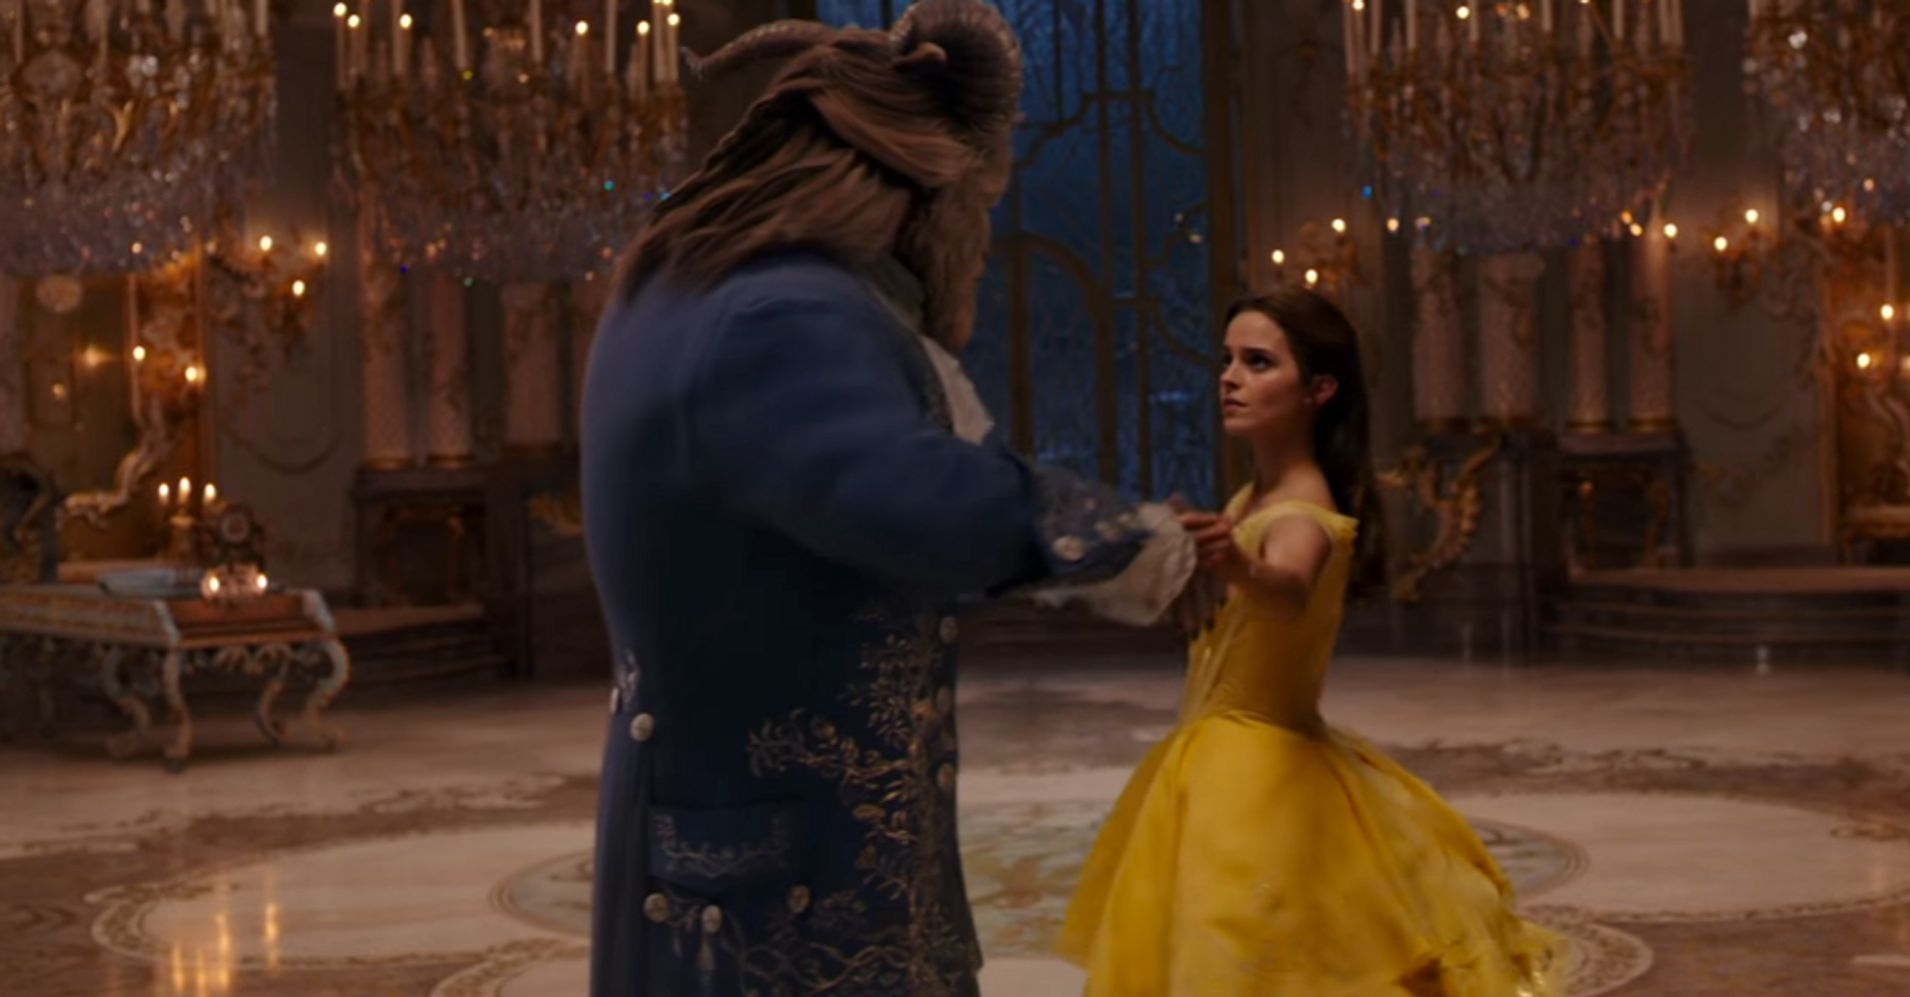 No One LOLs like Gaston Watching 'Beauty and the Beast' Without CGI